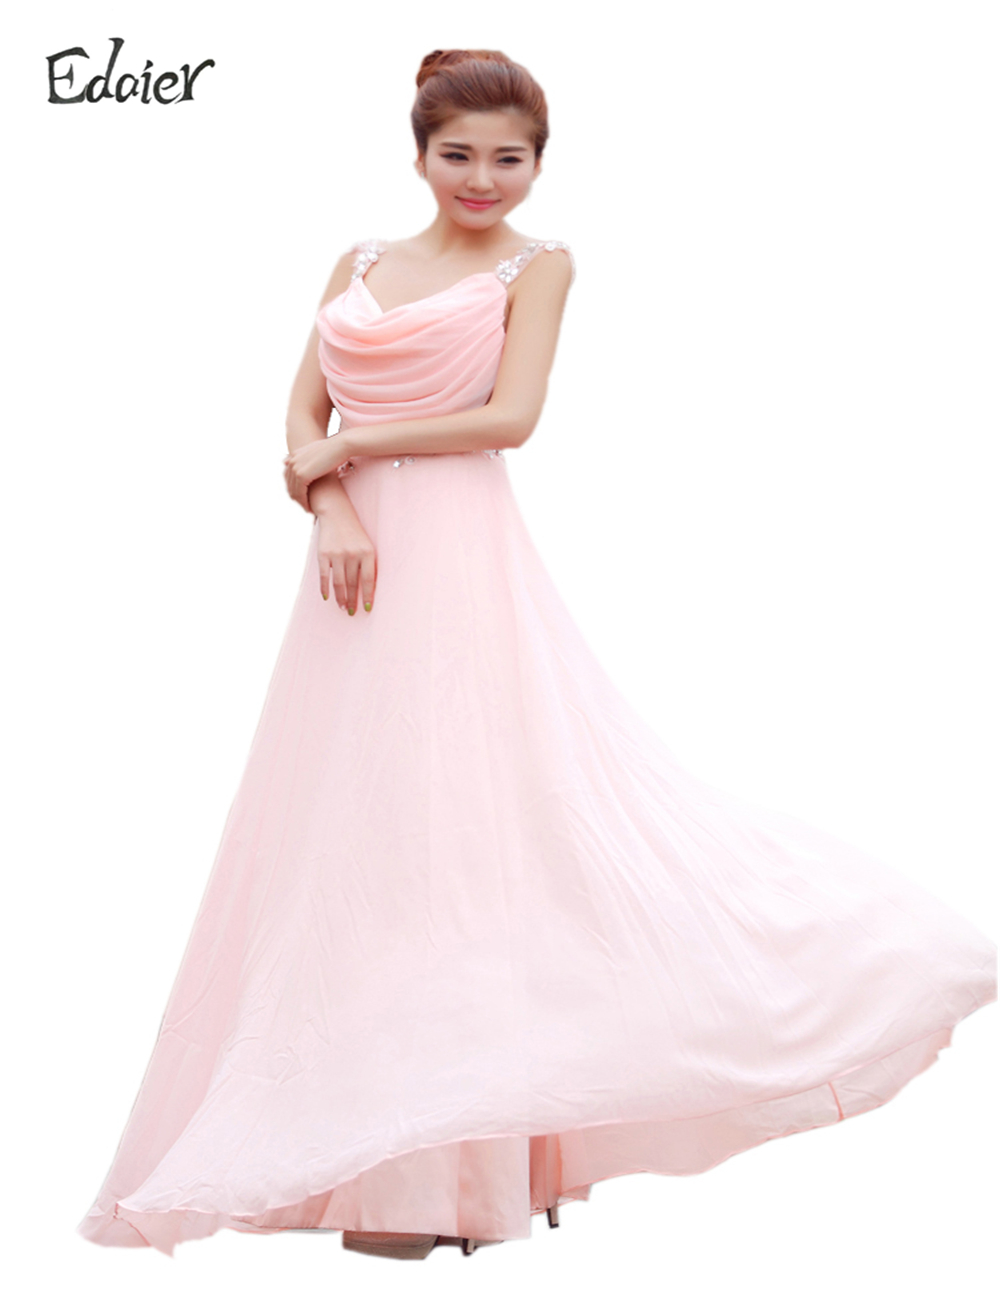 Compare prices on light pink chiffon bridesmaid dress online edaier beautiful cheap chiffon long light pink wedding bridesmaid dresses under 50 prom dress bridesmaids dresses ombrellifo Image collections